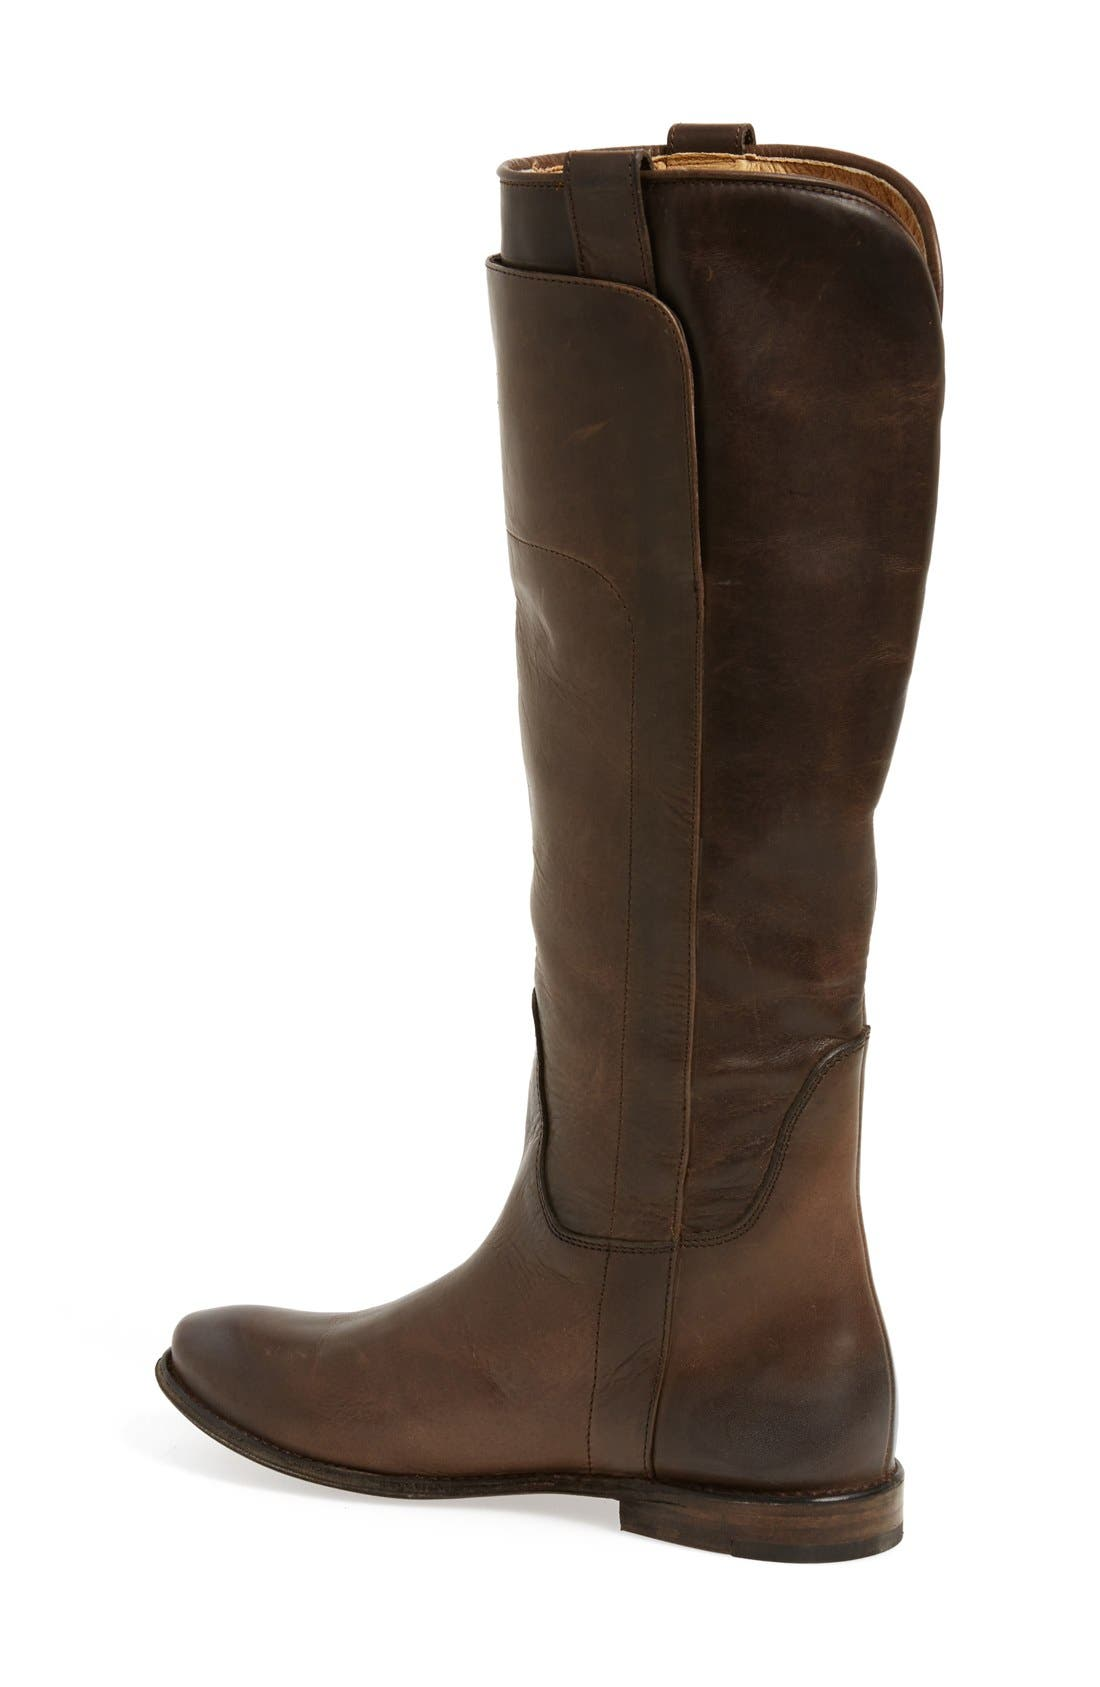 'Paige' Tall Riding Boot,                             Alternate thumbnail 2, color,                             020